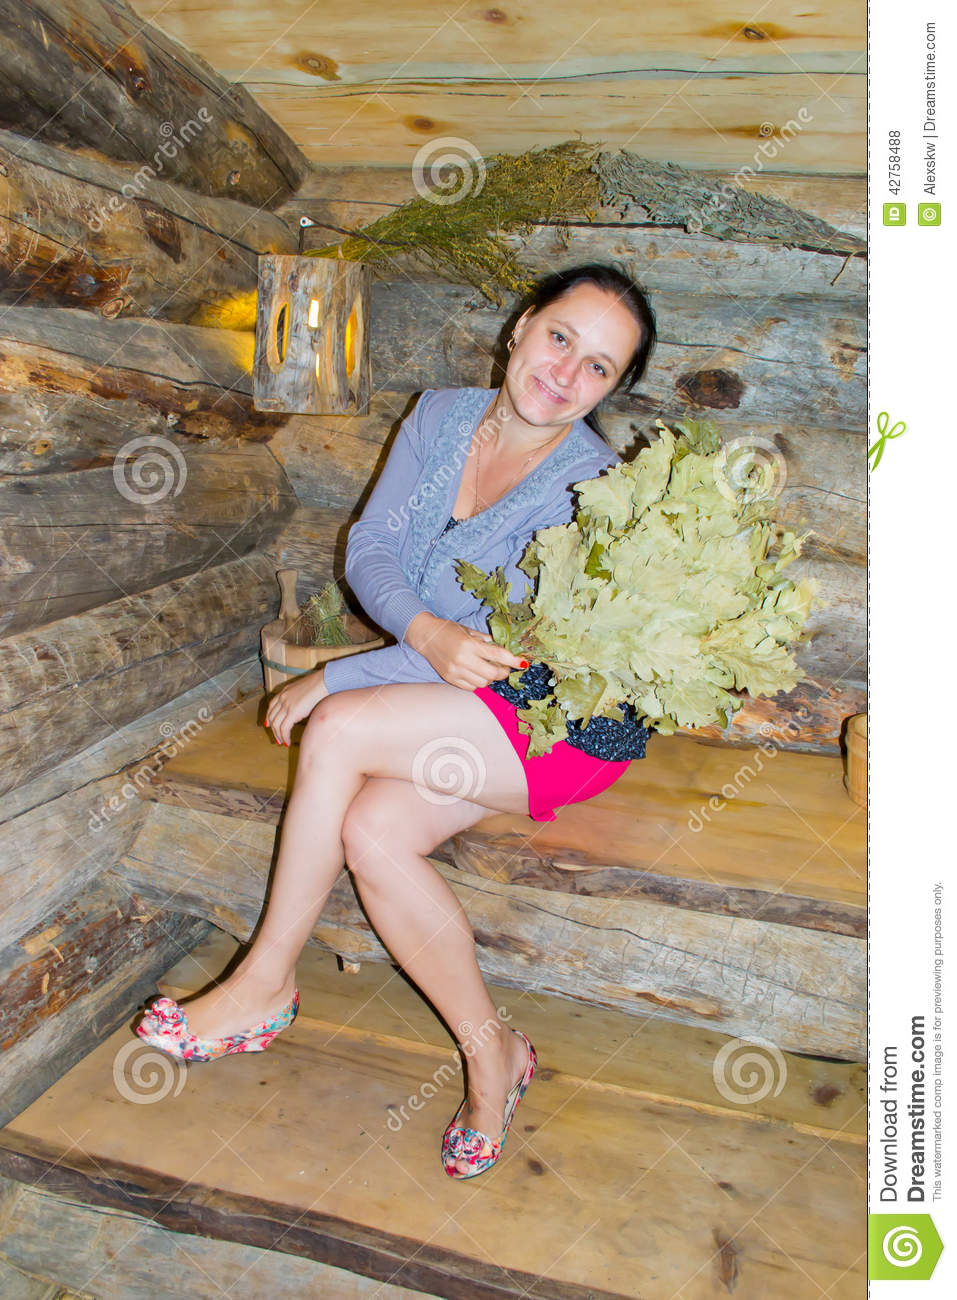 Russian Woman On Bench In Bath-House Royalty-Free Stock Photo  Cartoondealercom -7360